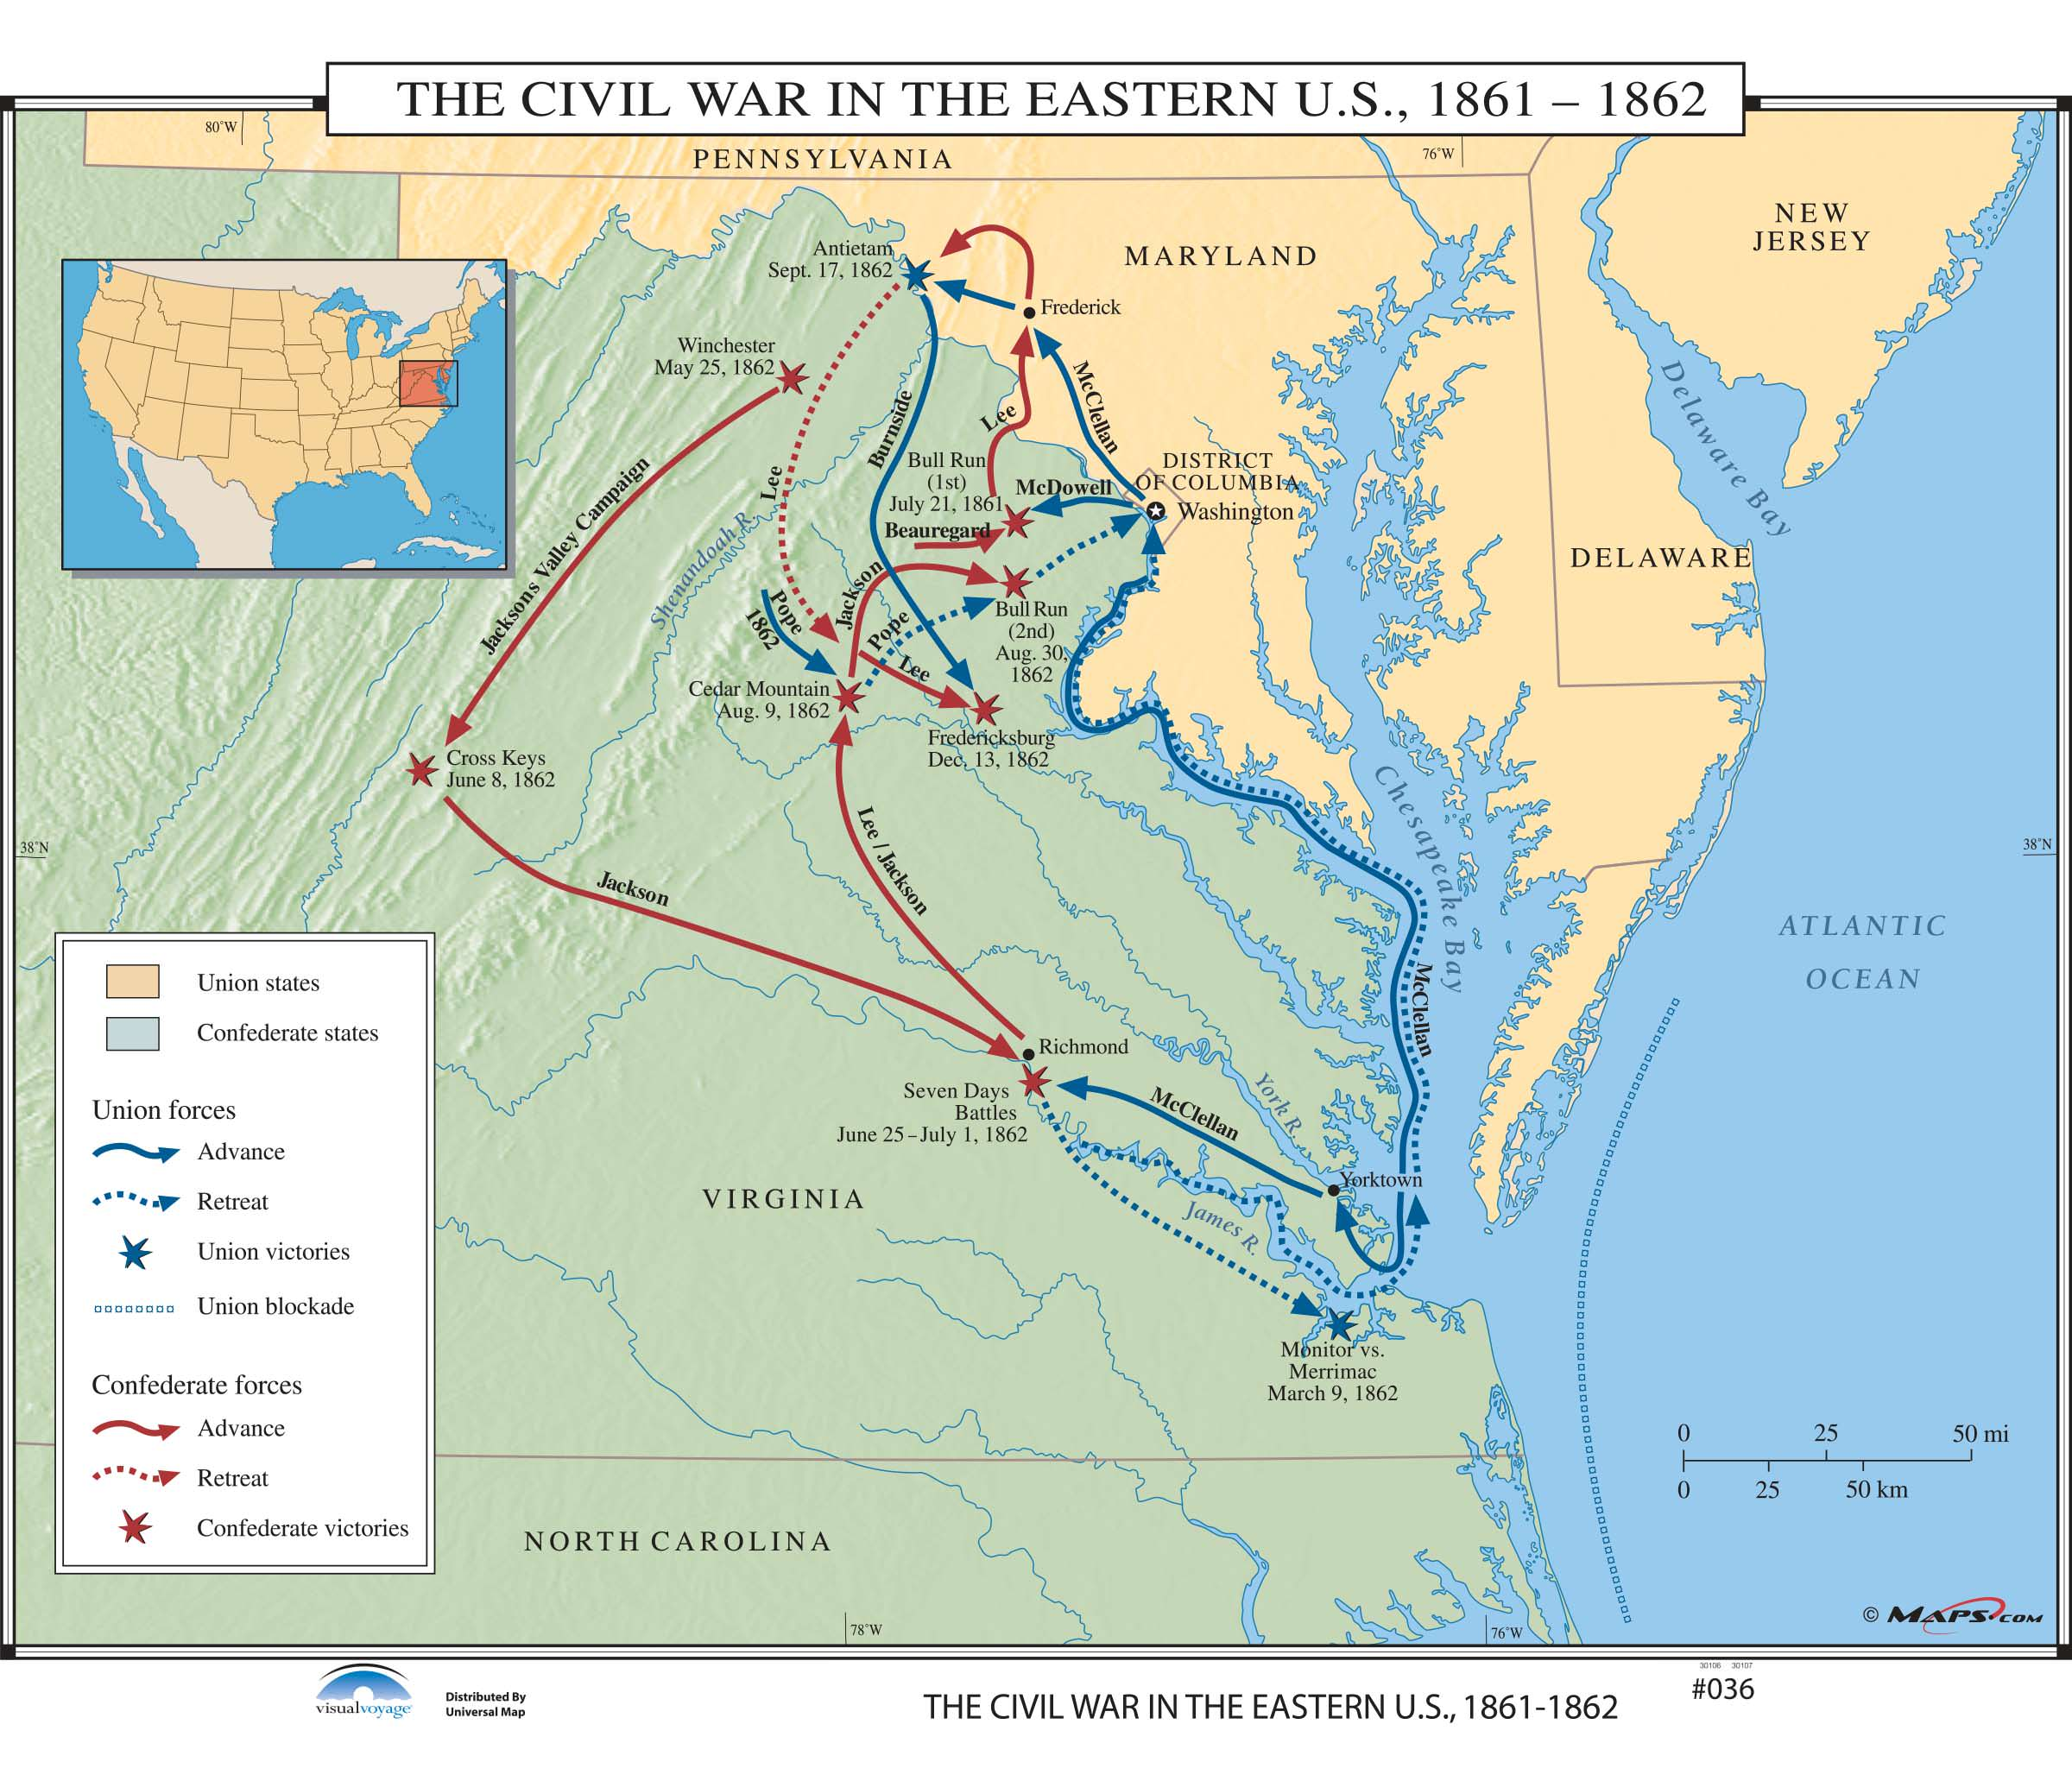 036 the civil war in the eastern us 1861 1862 kappa map group